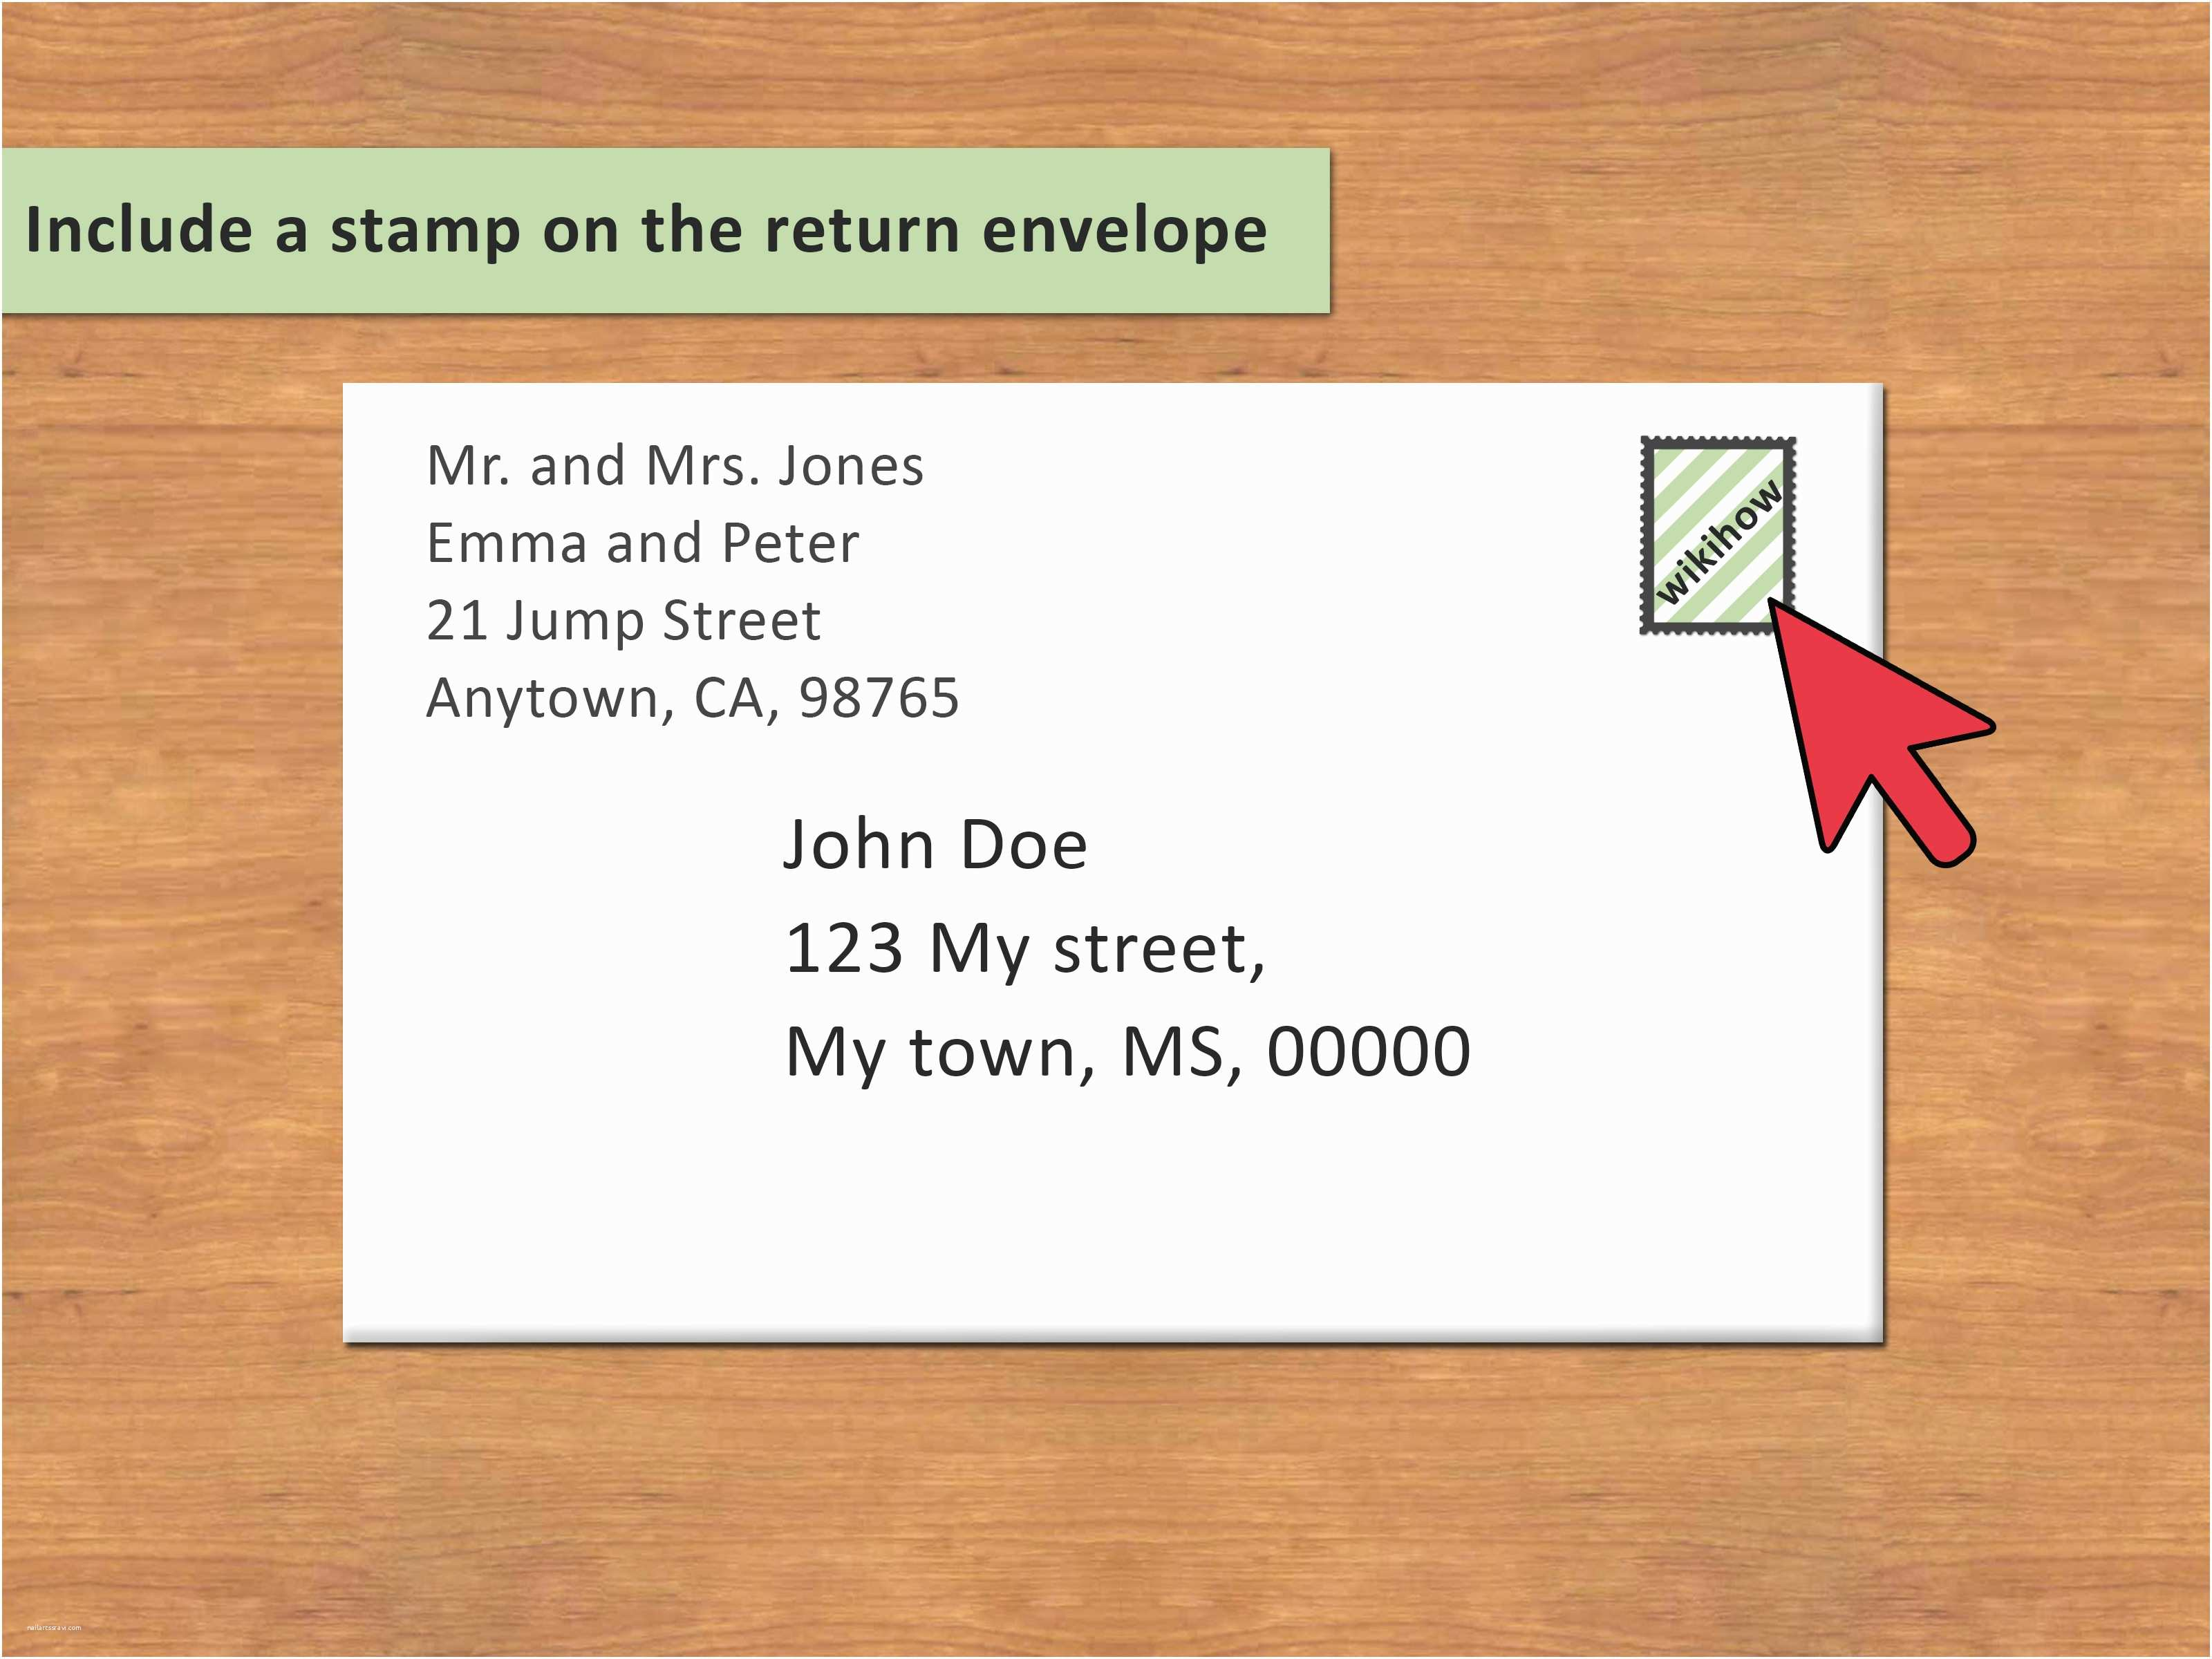 Addressing Wedding Invitations to A Family 3 Ways to Address An Envelope to A Family Wikihow